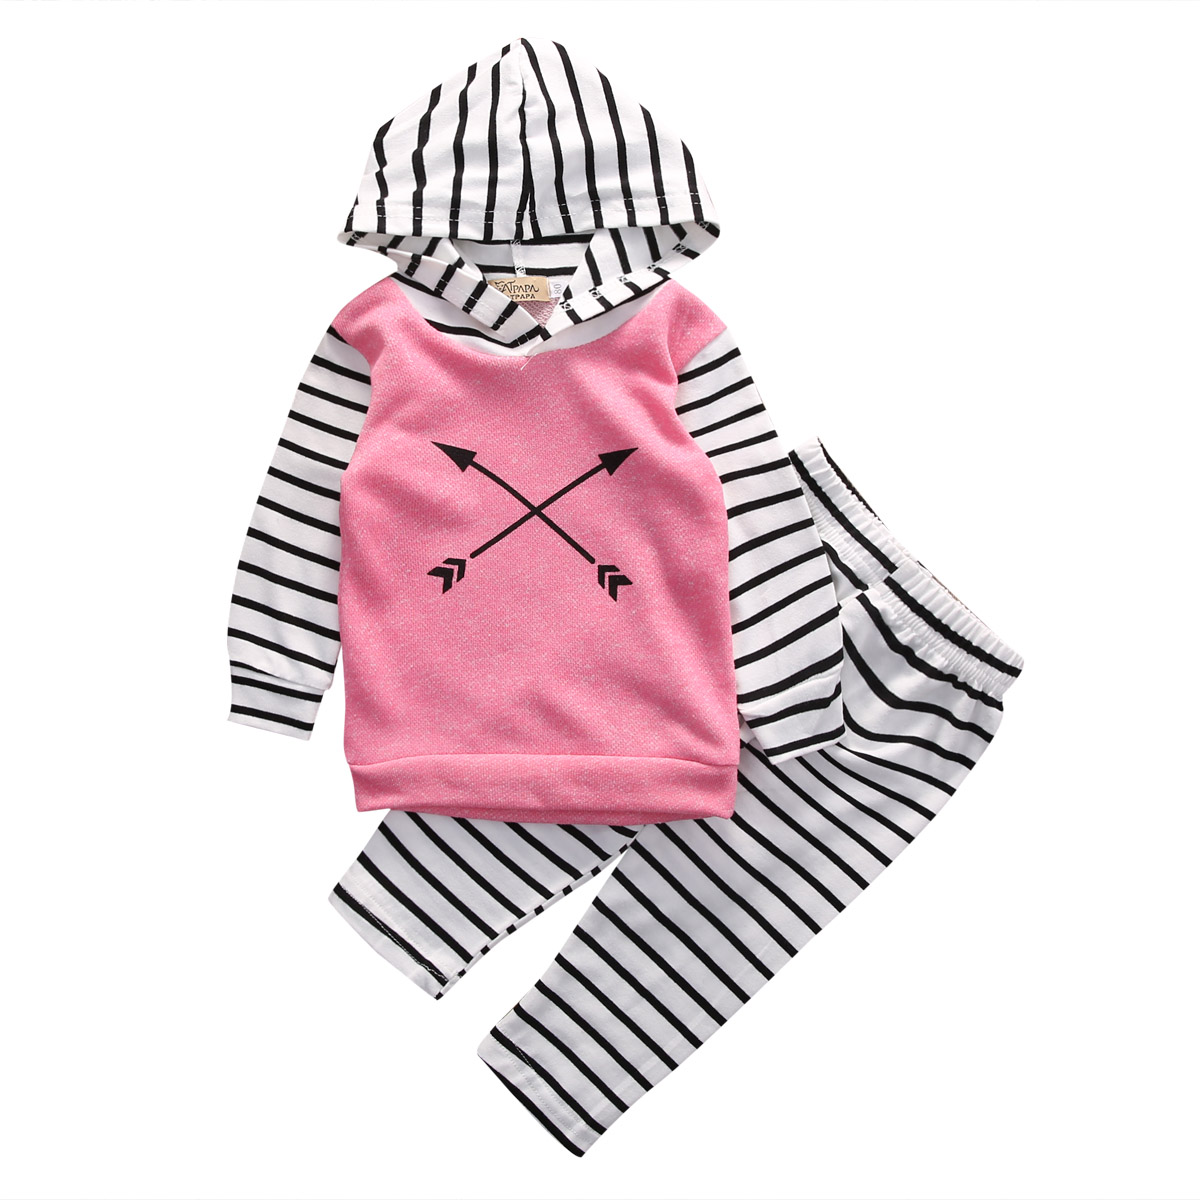 2PCS Set Newborn Baby Clothes Hooded Sweatshirt Coat Tops +Striped Pant Trouser Outfit Bebek Giyim Kids Clothing Set Bebes Suit 2017 newborn baby boy girl clothes floral infant bebes romper bodysuit and bloomers bottom 2pcs outfit bebek giyim clothing